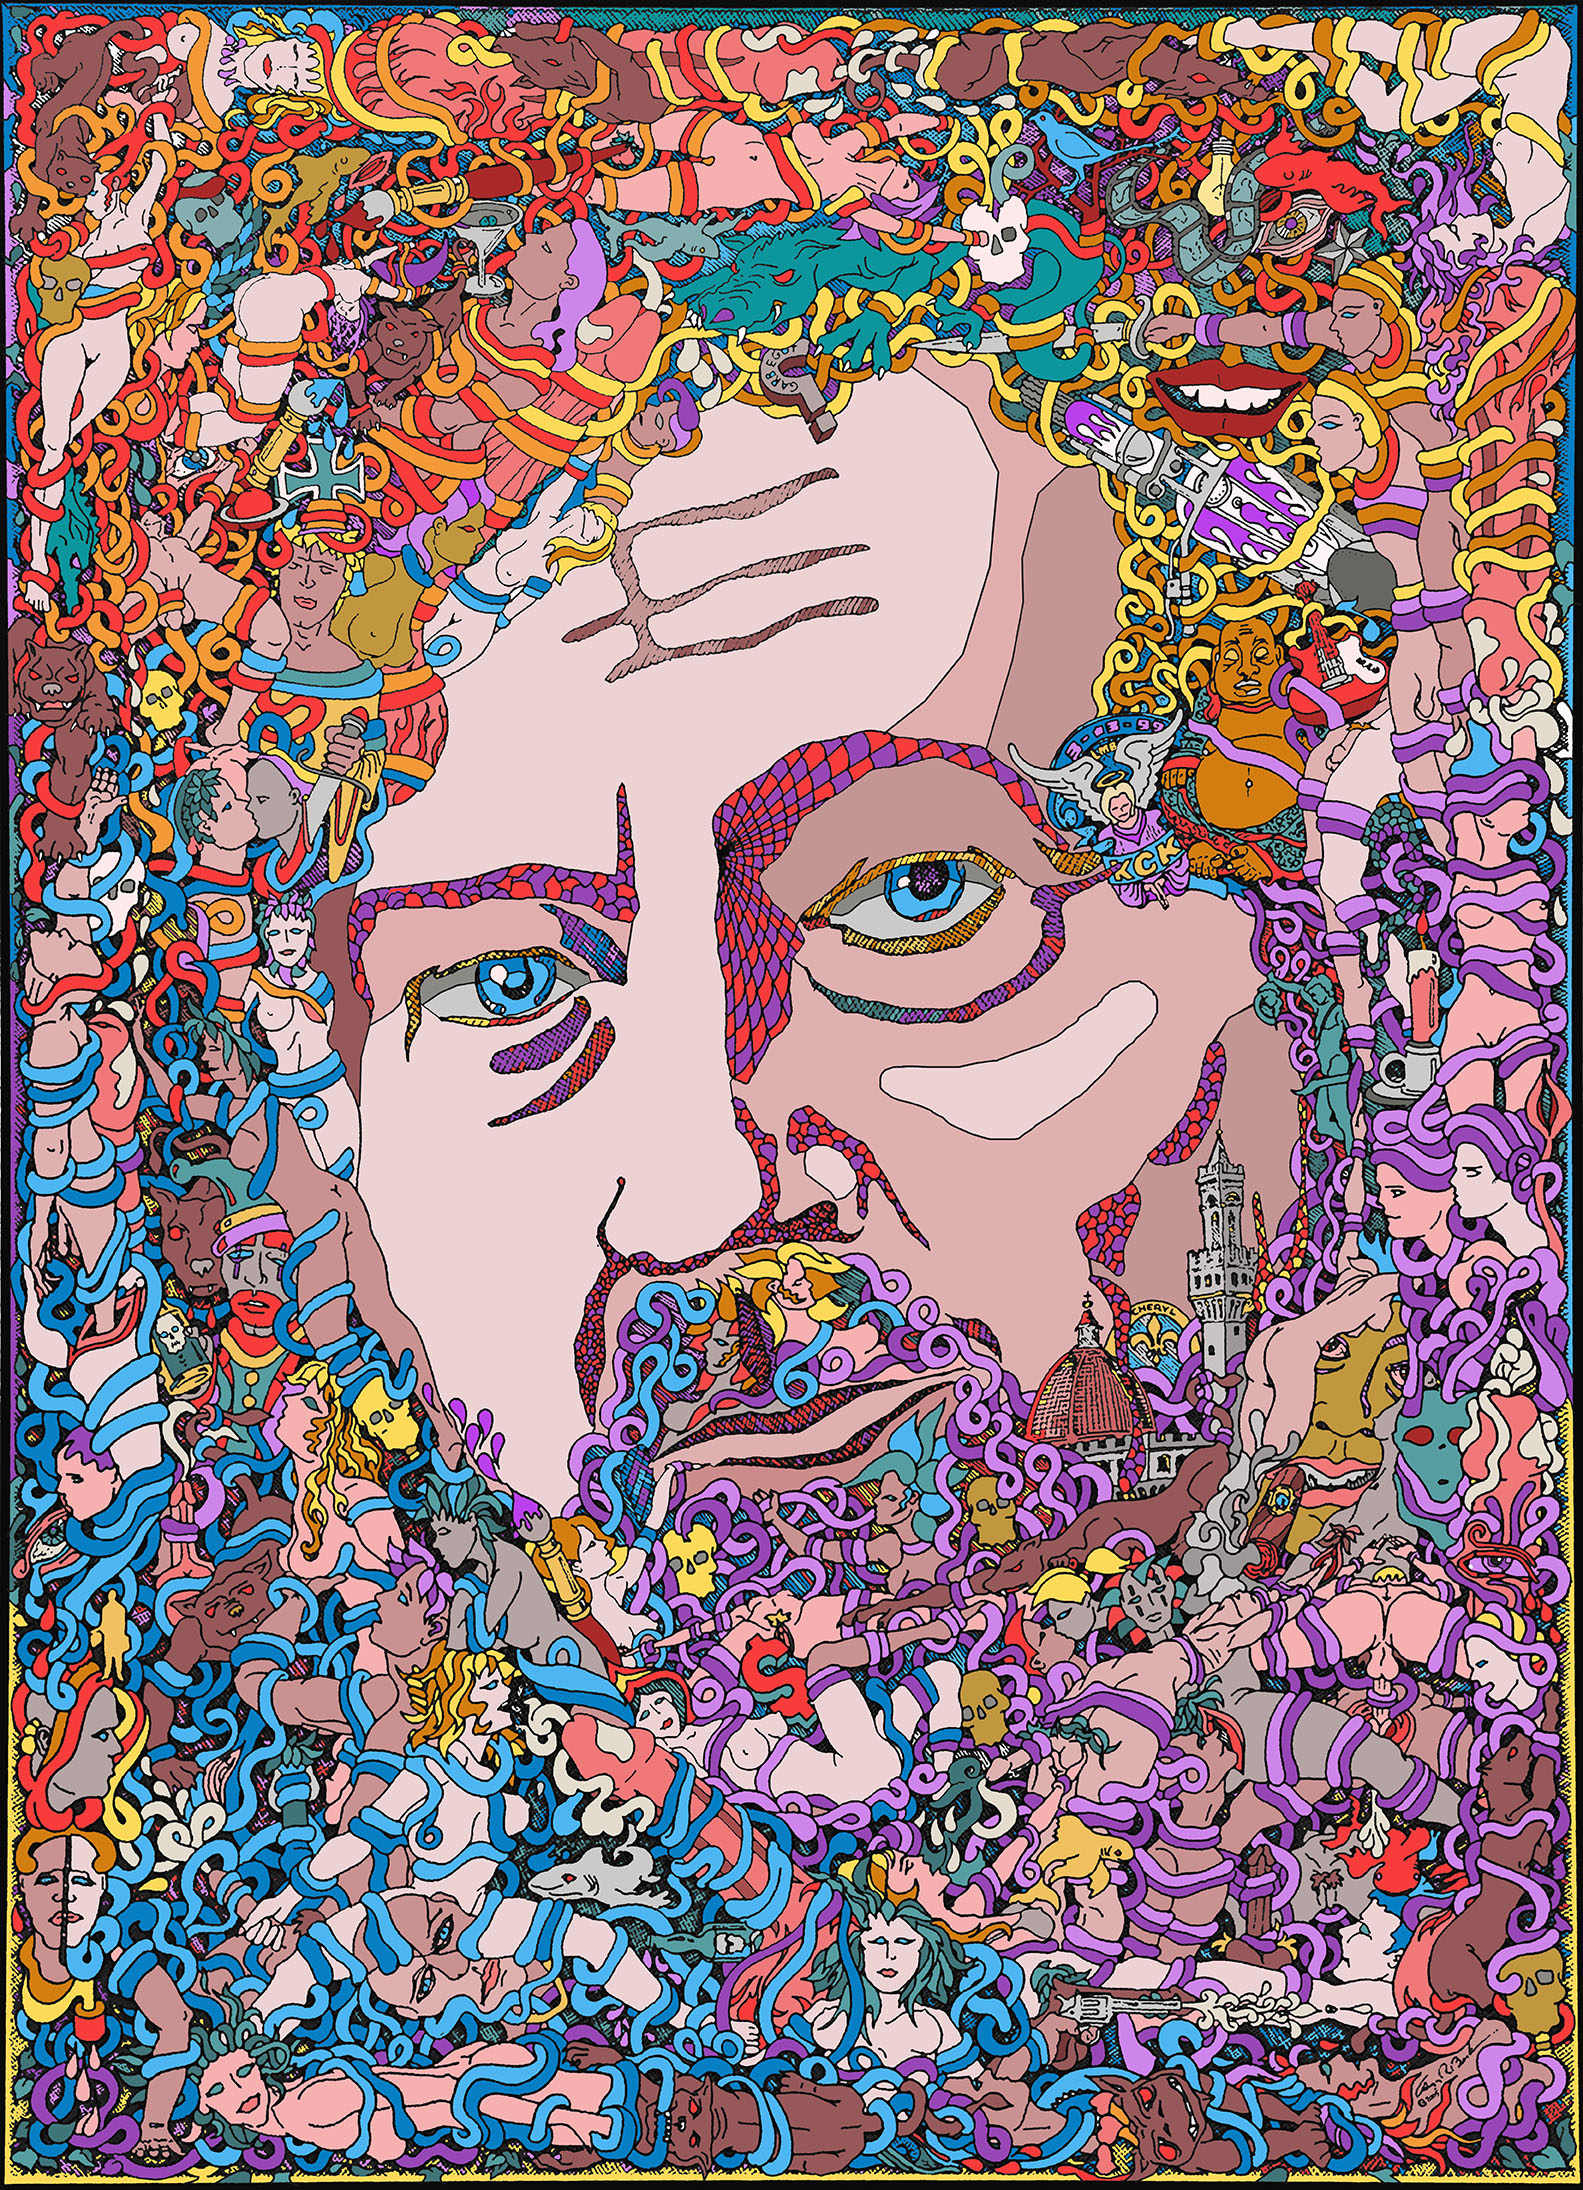 Self Portrait by Gregory Beck